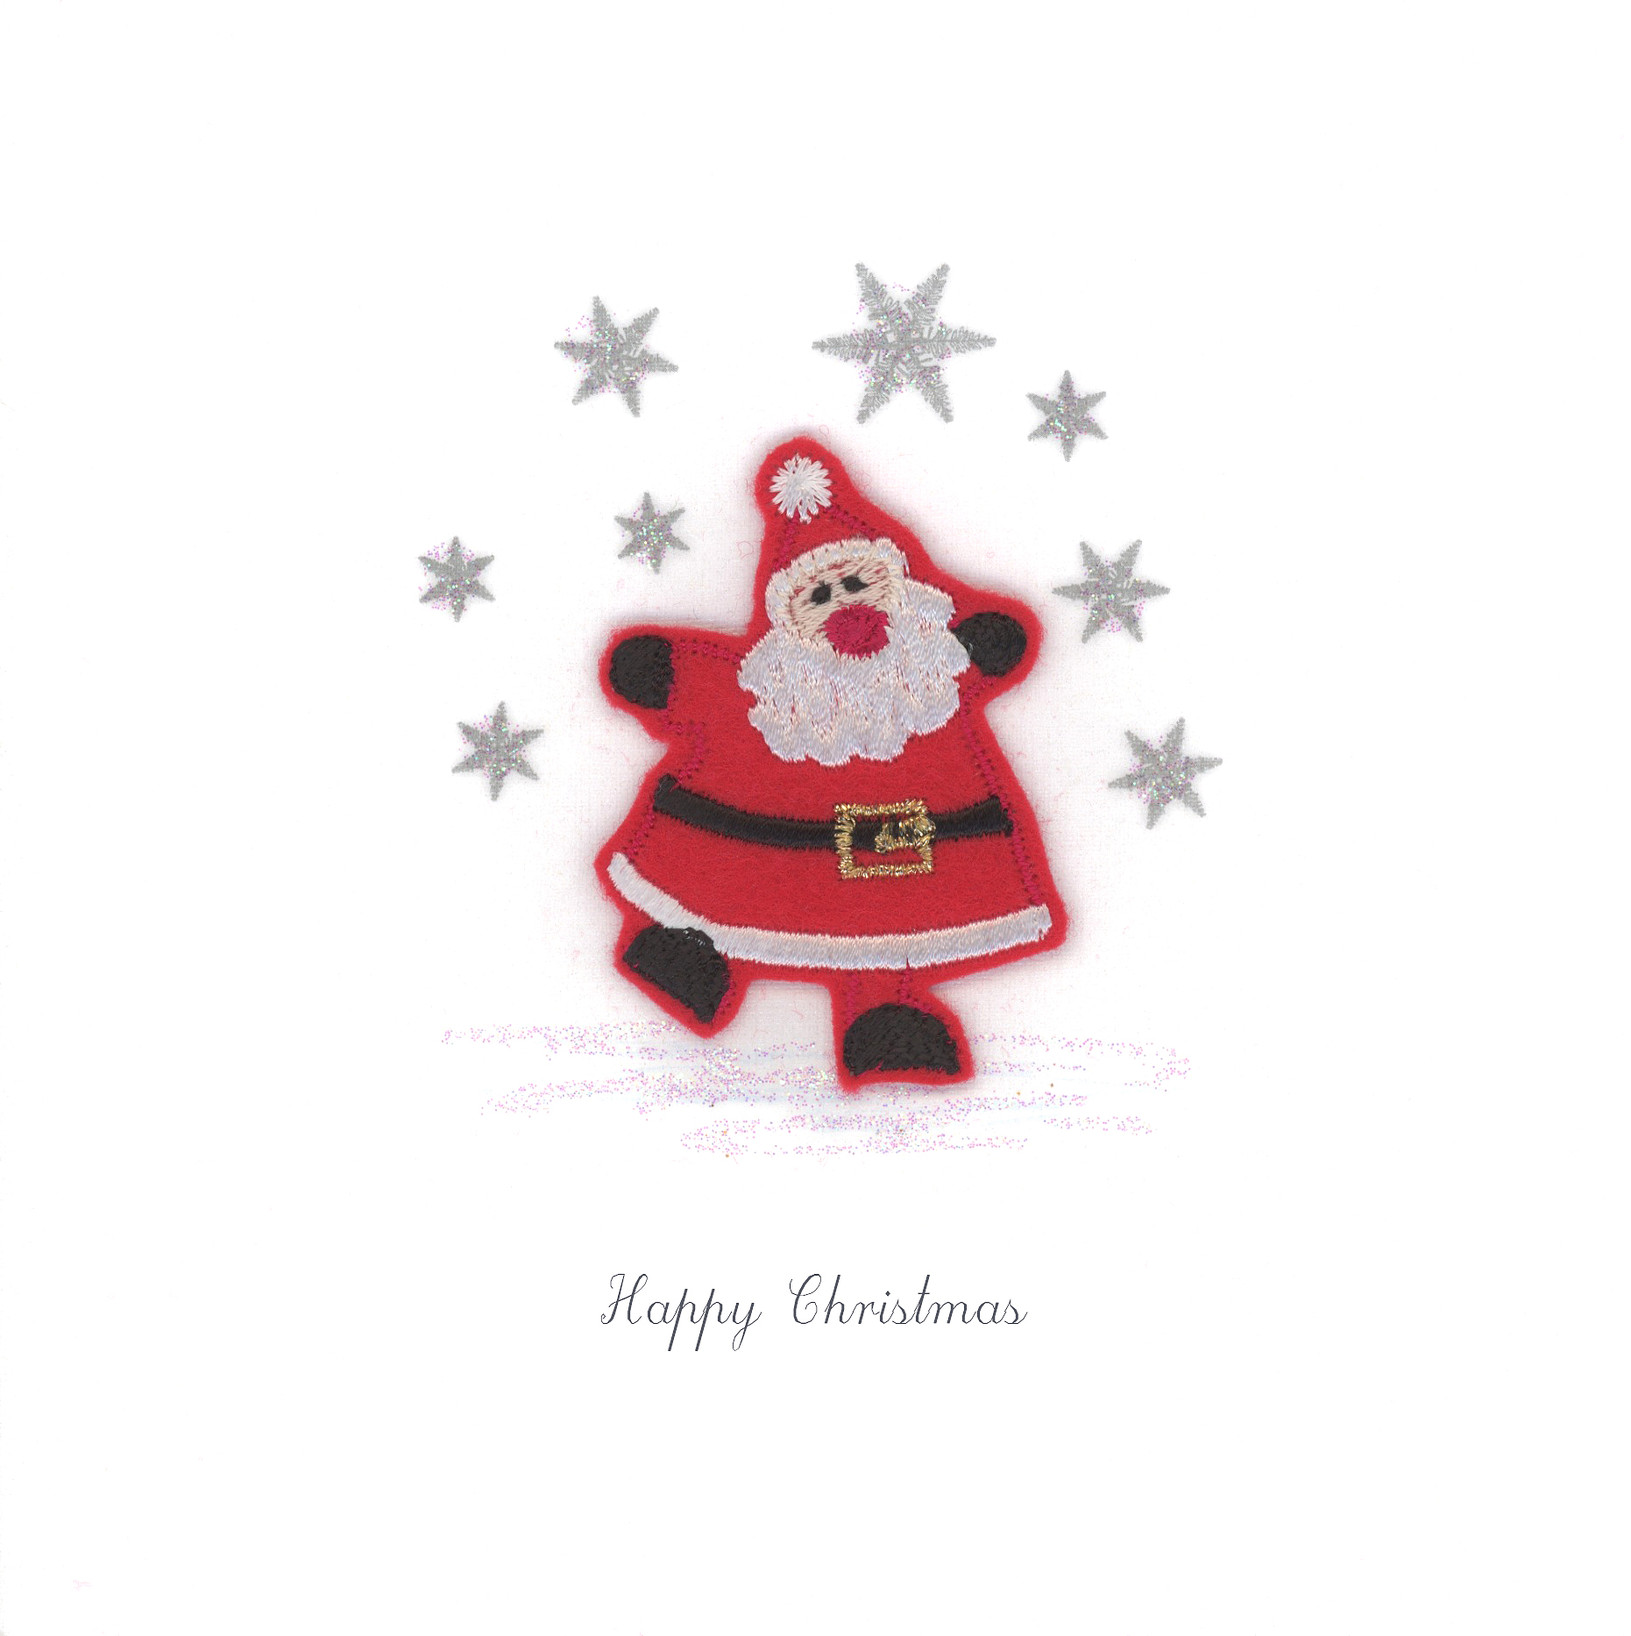 Photo Mount Christmas Cards Pictures Wallpapers